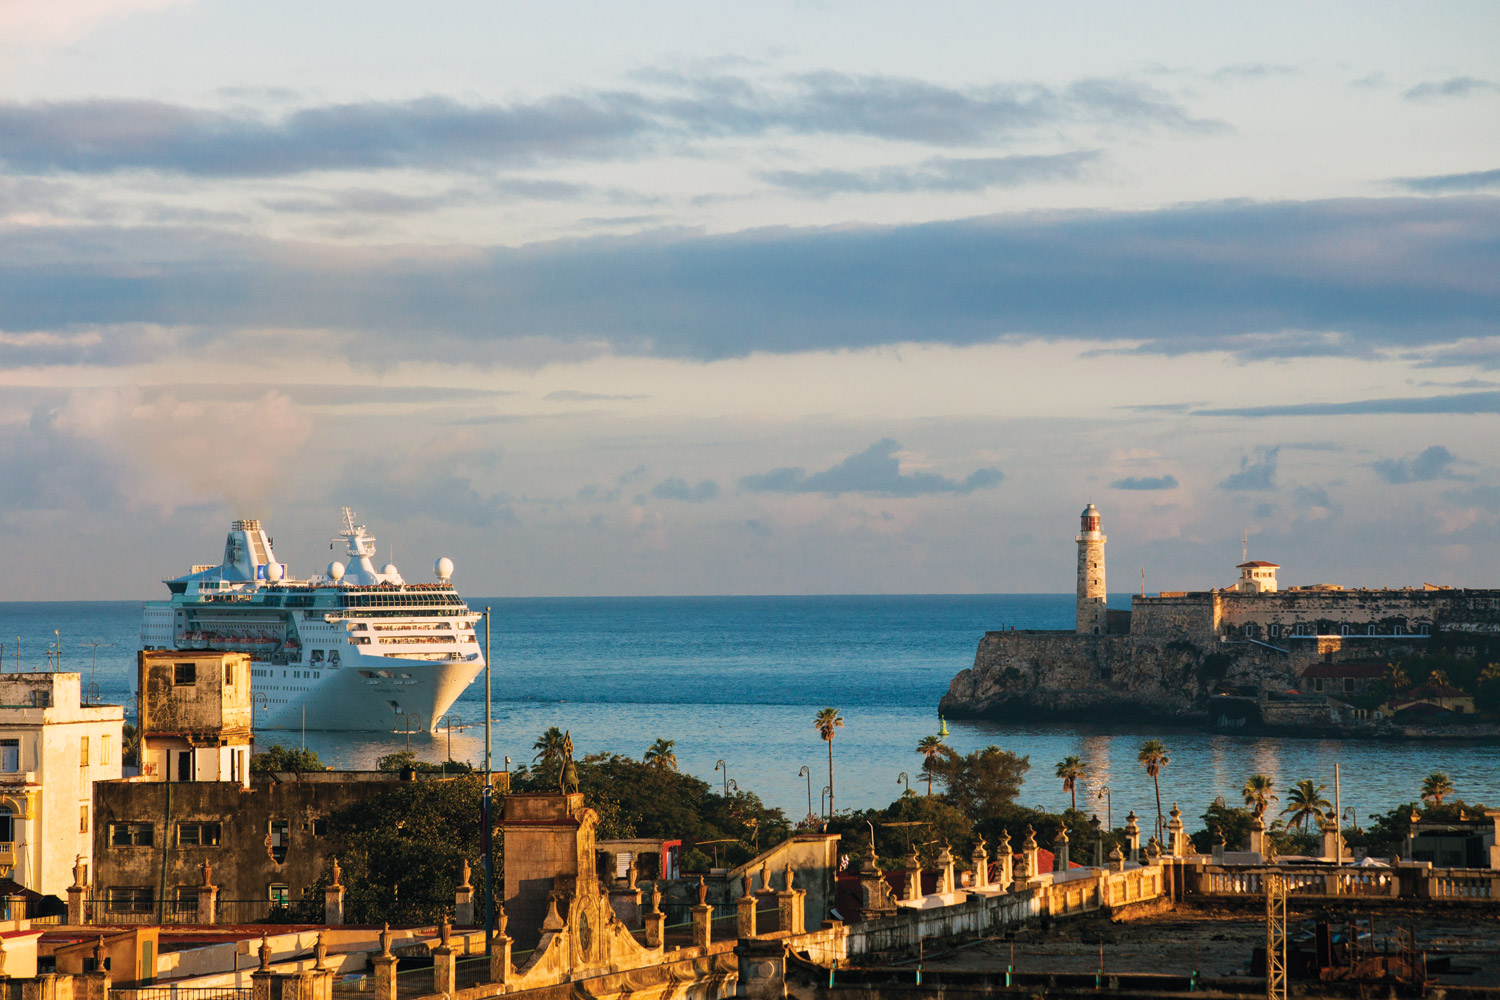 Taking a cruise—both ocean-going and on the rivers—is one of the most popular ways to vacation, according to the survey, and Cuba is a top international destination. (Photo credit: Royal Caribbean International)